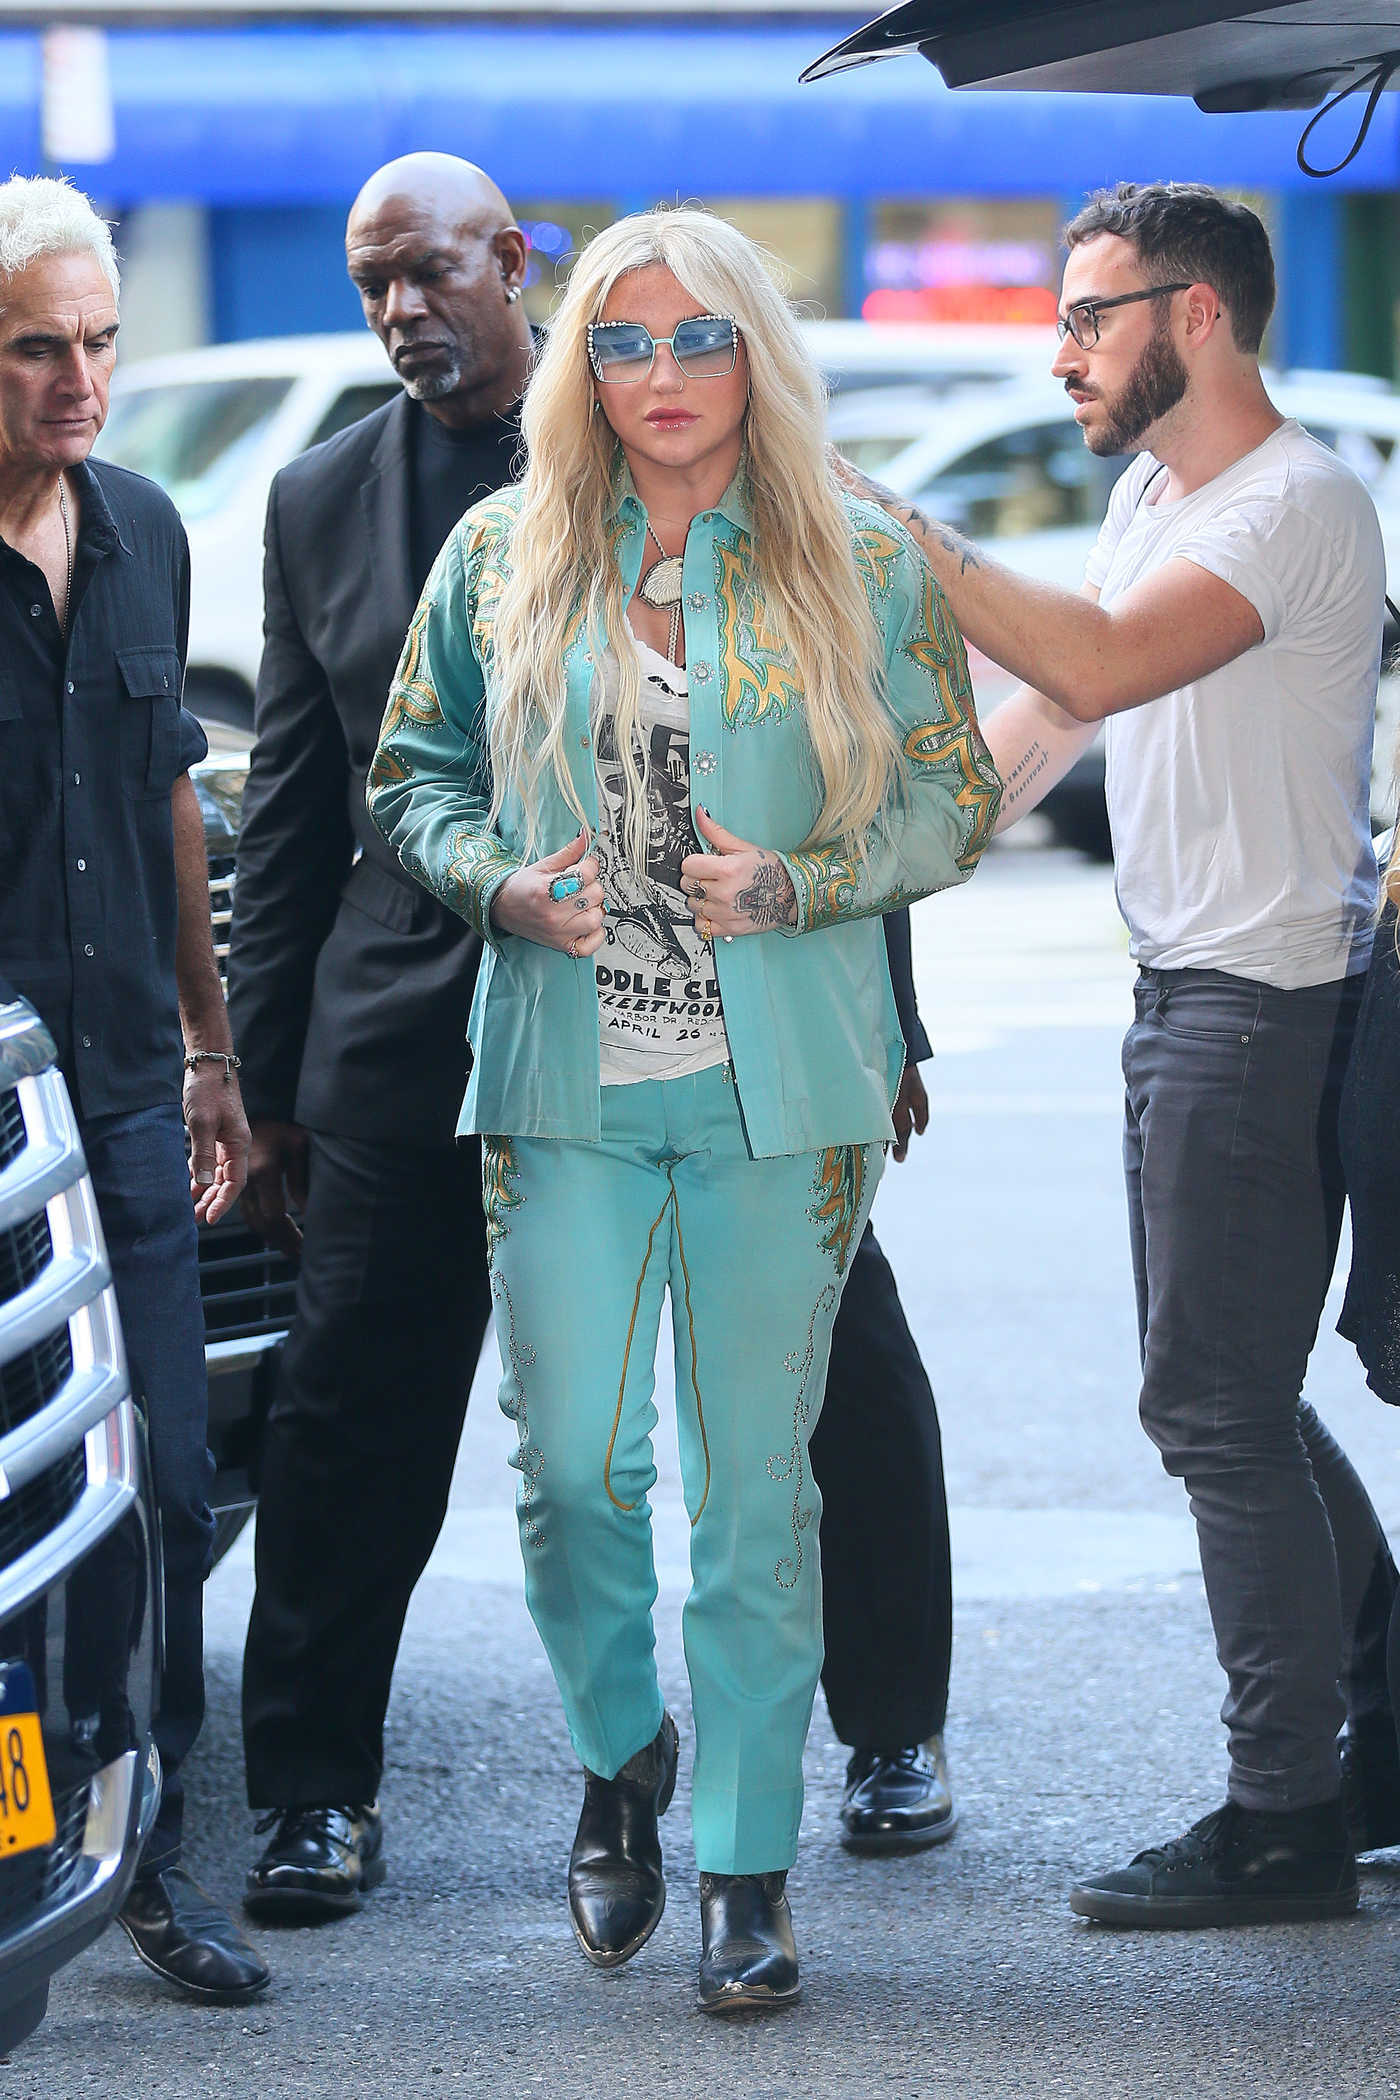 Kesha Arrives at Z100 Radio Station Studios in New York City 07/18/2017